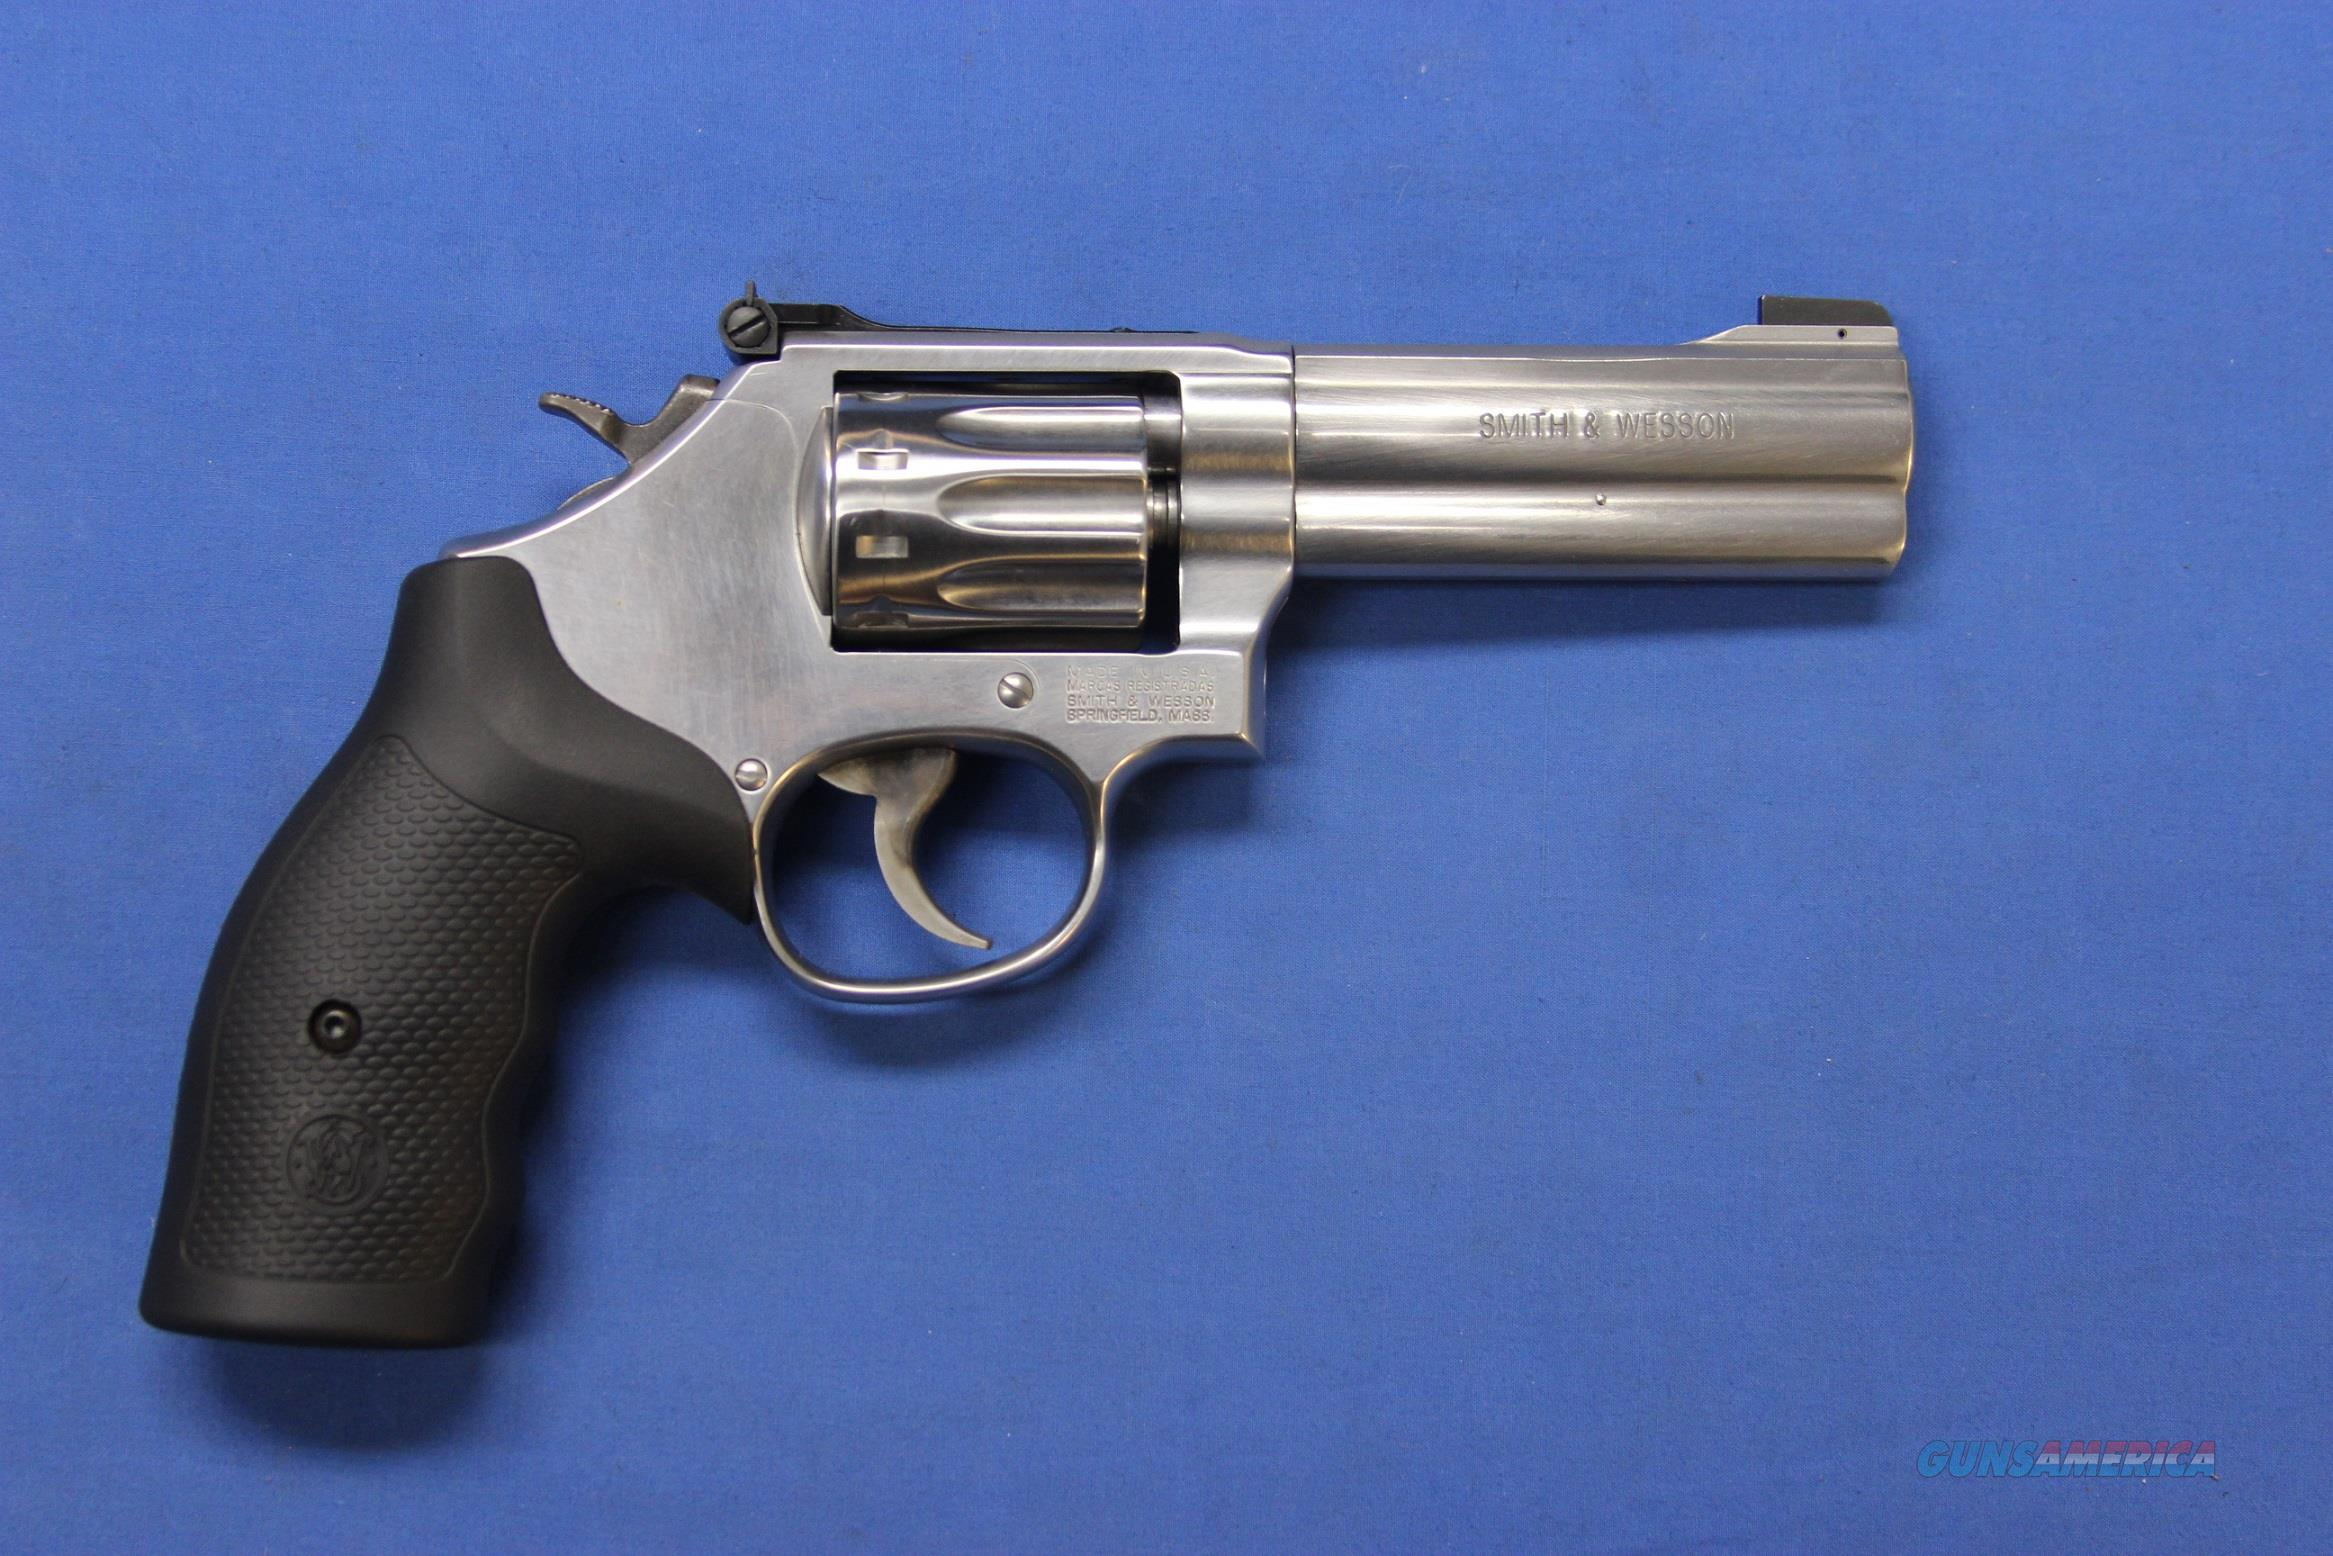 SMITH & WESSON 617 STAINLESS .22 LR 10-SHOT - L... for sale